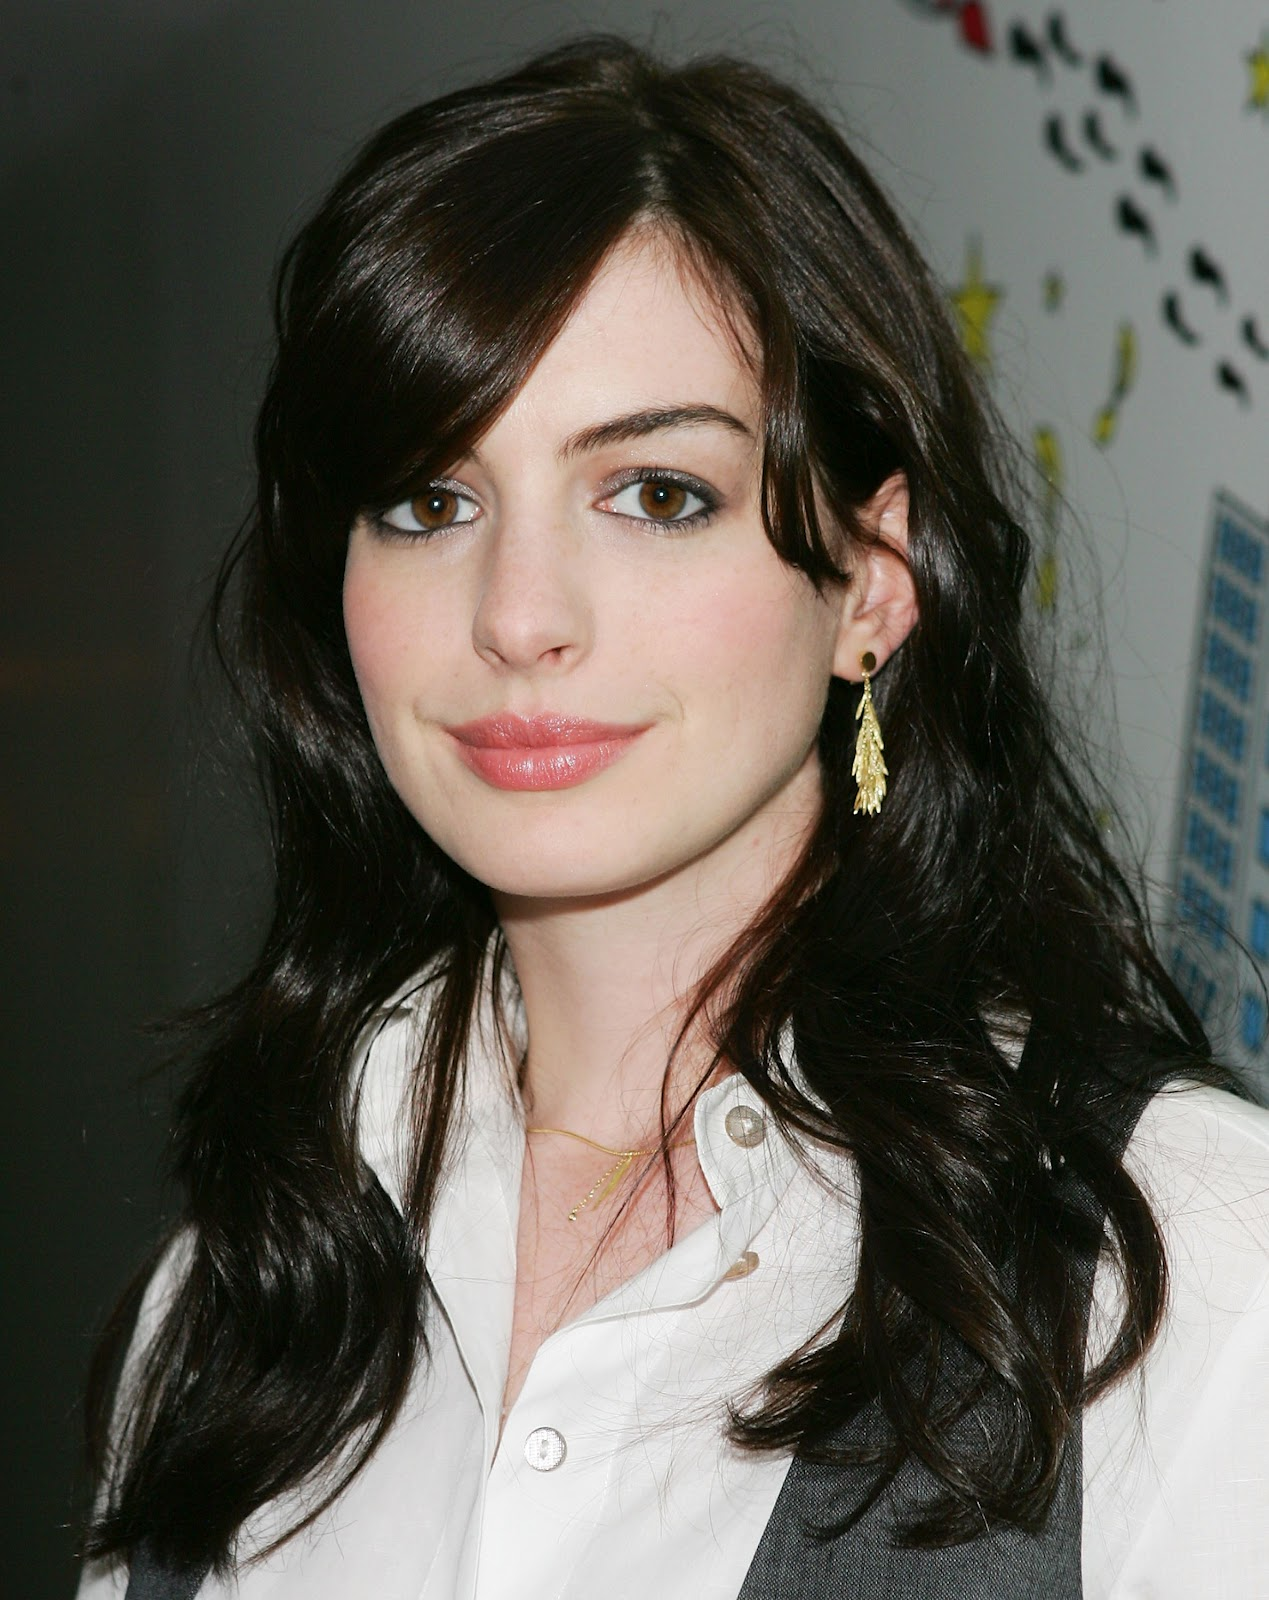 Nice Girl Wallpaper Desktop Anne Hathaway Special Pictures 10 Film Actresses